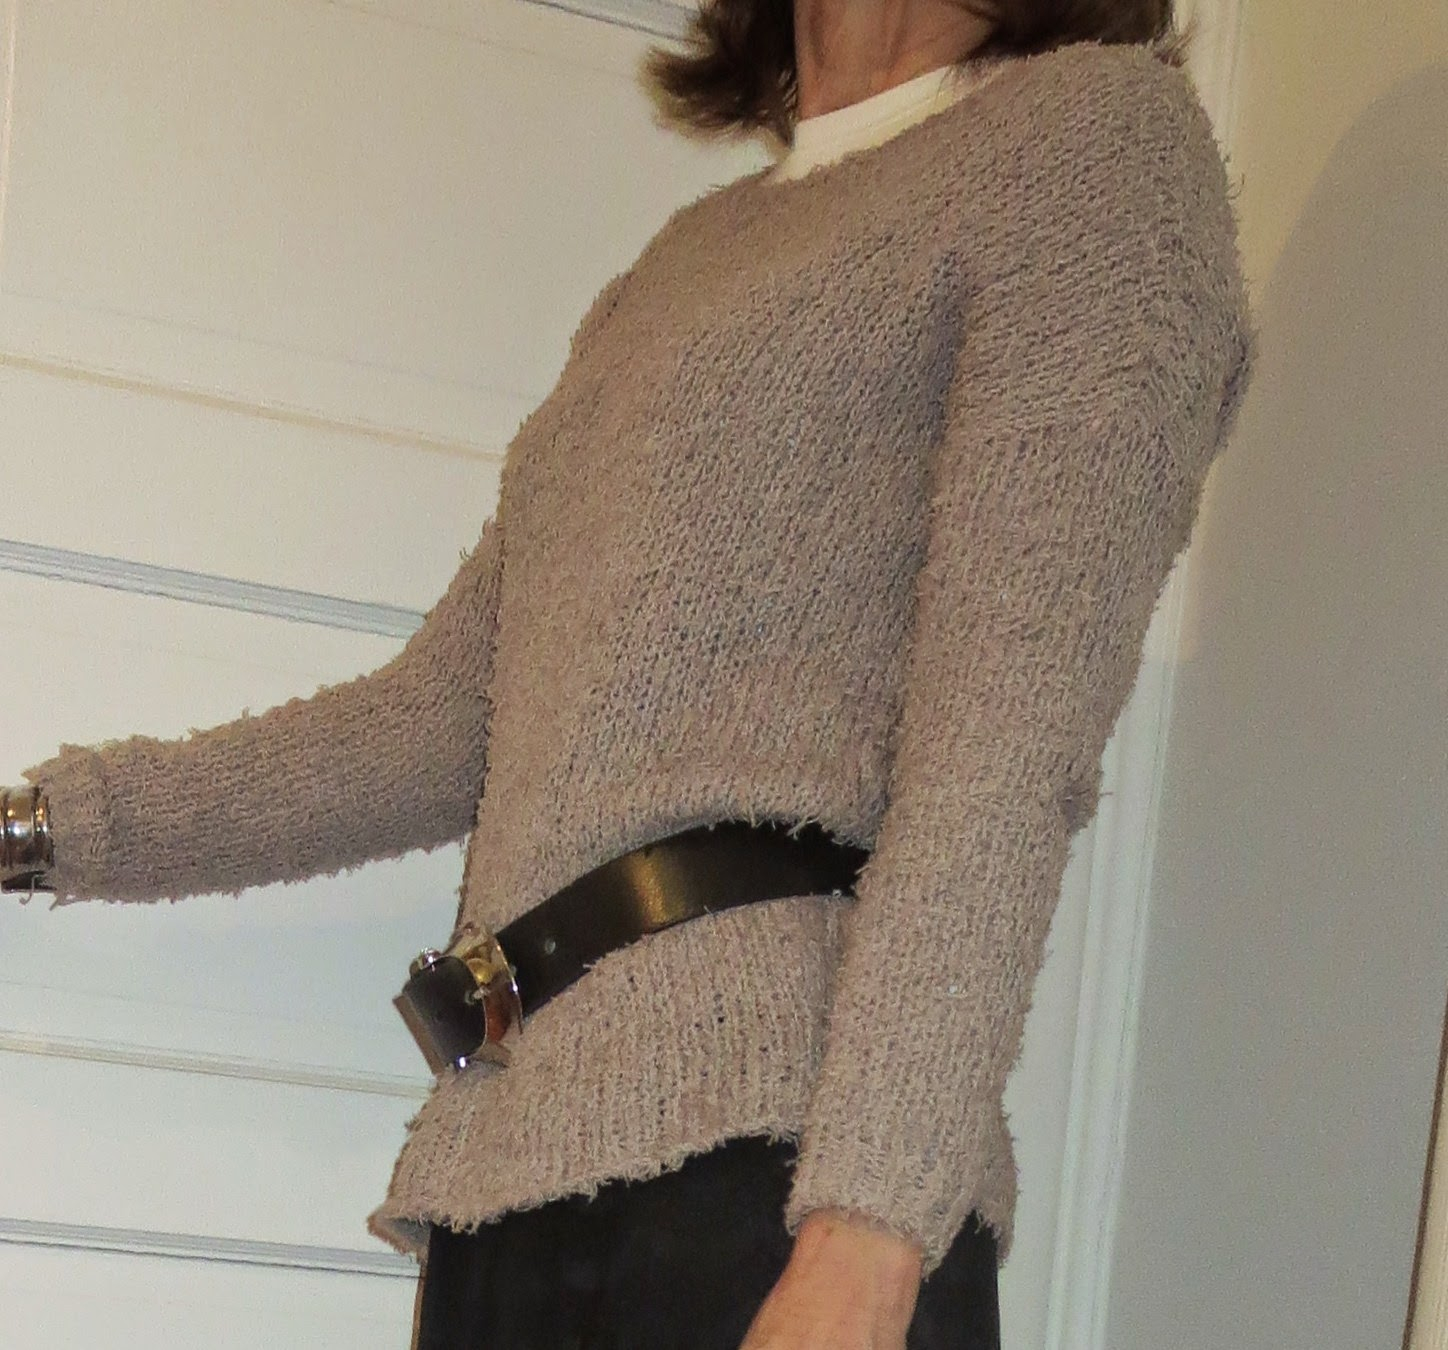 Vince sweater for women over 50